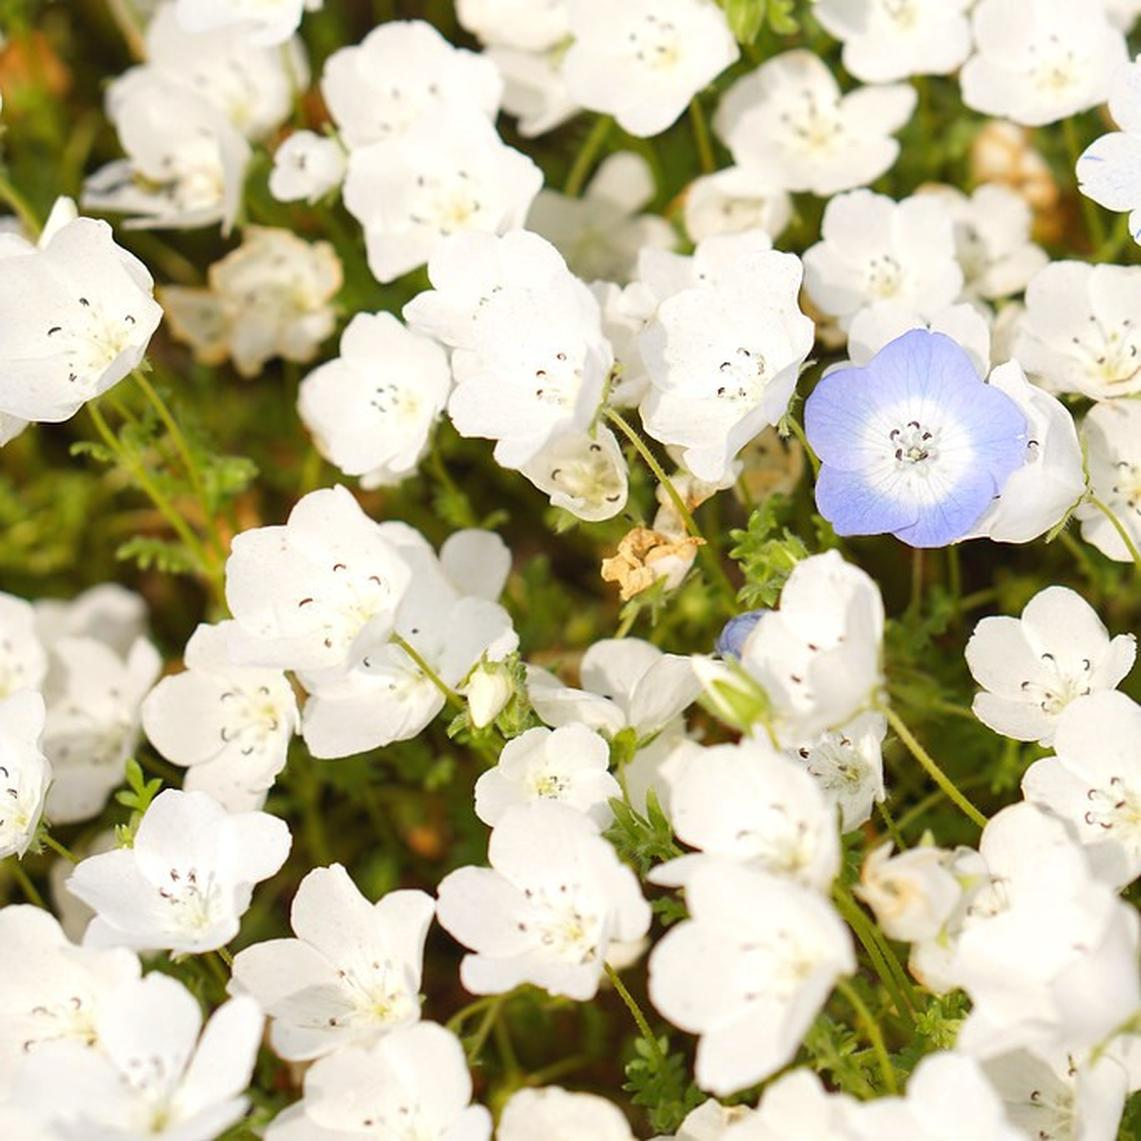 Nemophila Seeds - Snow White